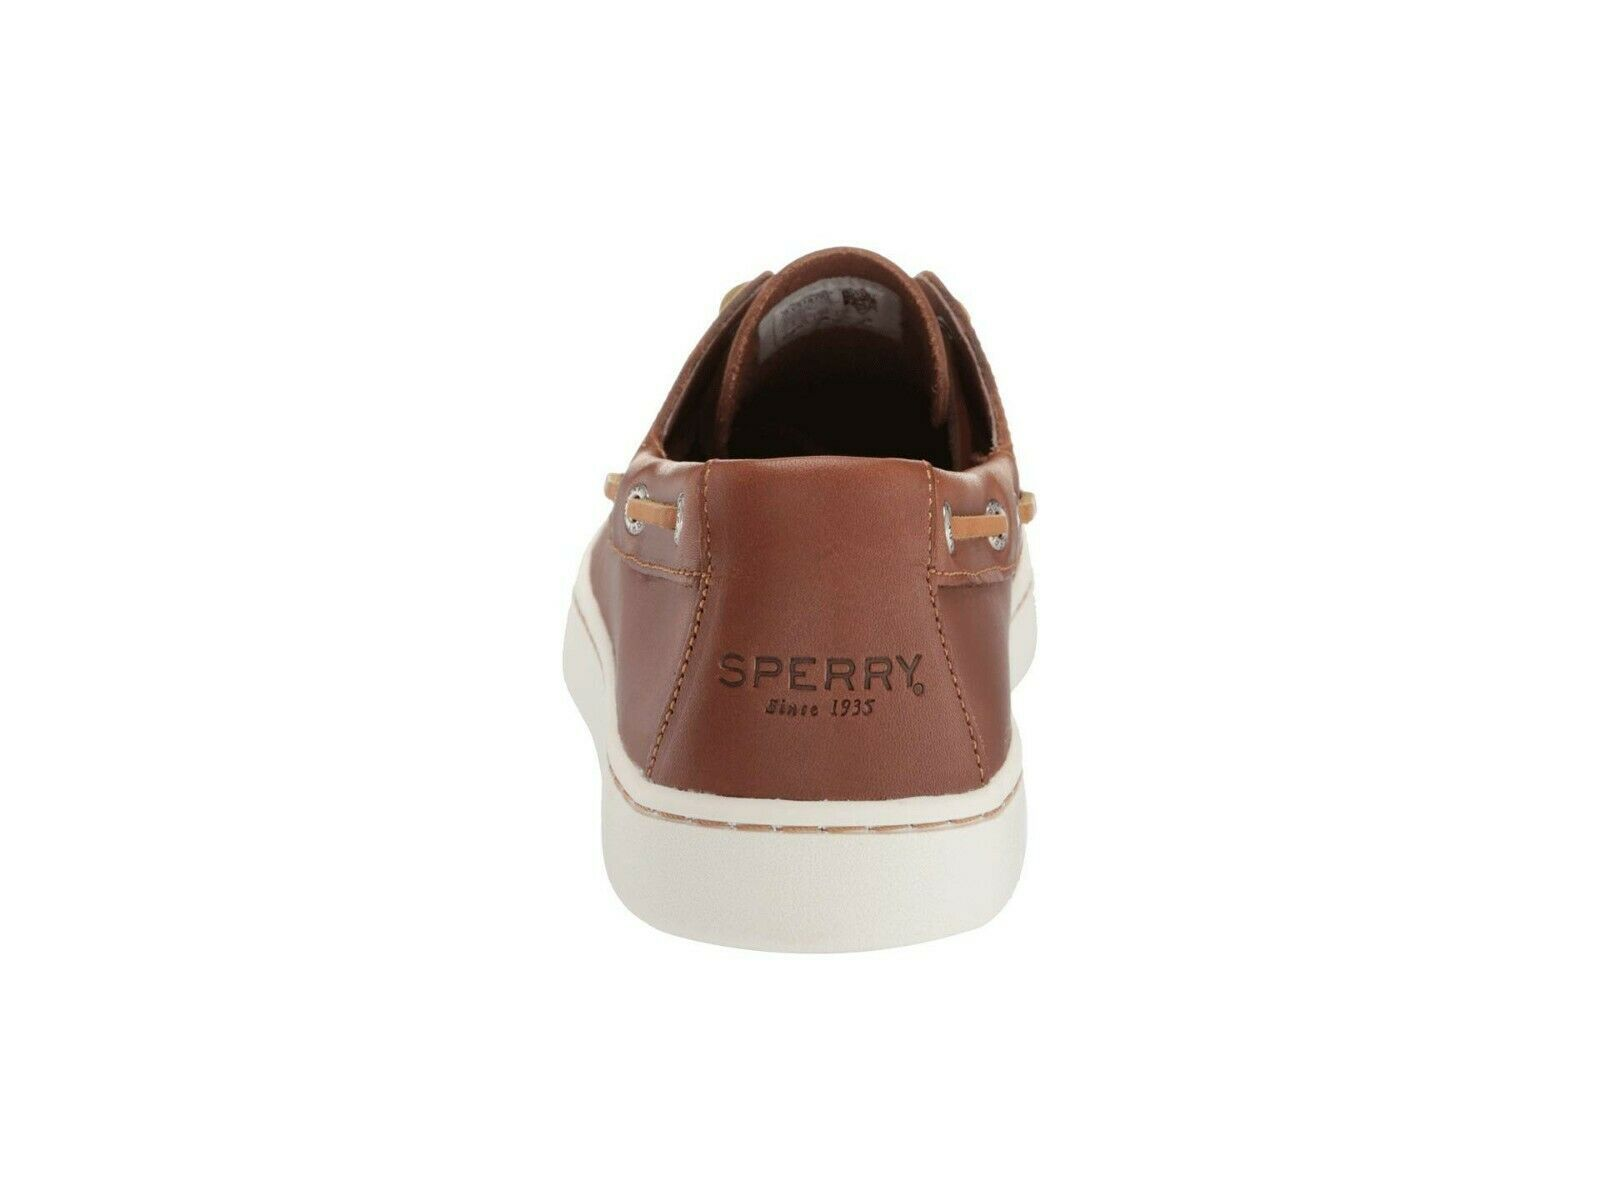 Men's Sperry Top-Sider Cup 2 Eye Leather Oxford, STS18791 Multiple Sizes Tan image 5